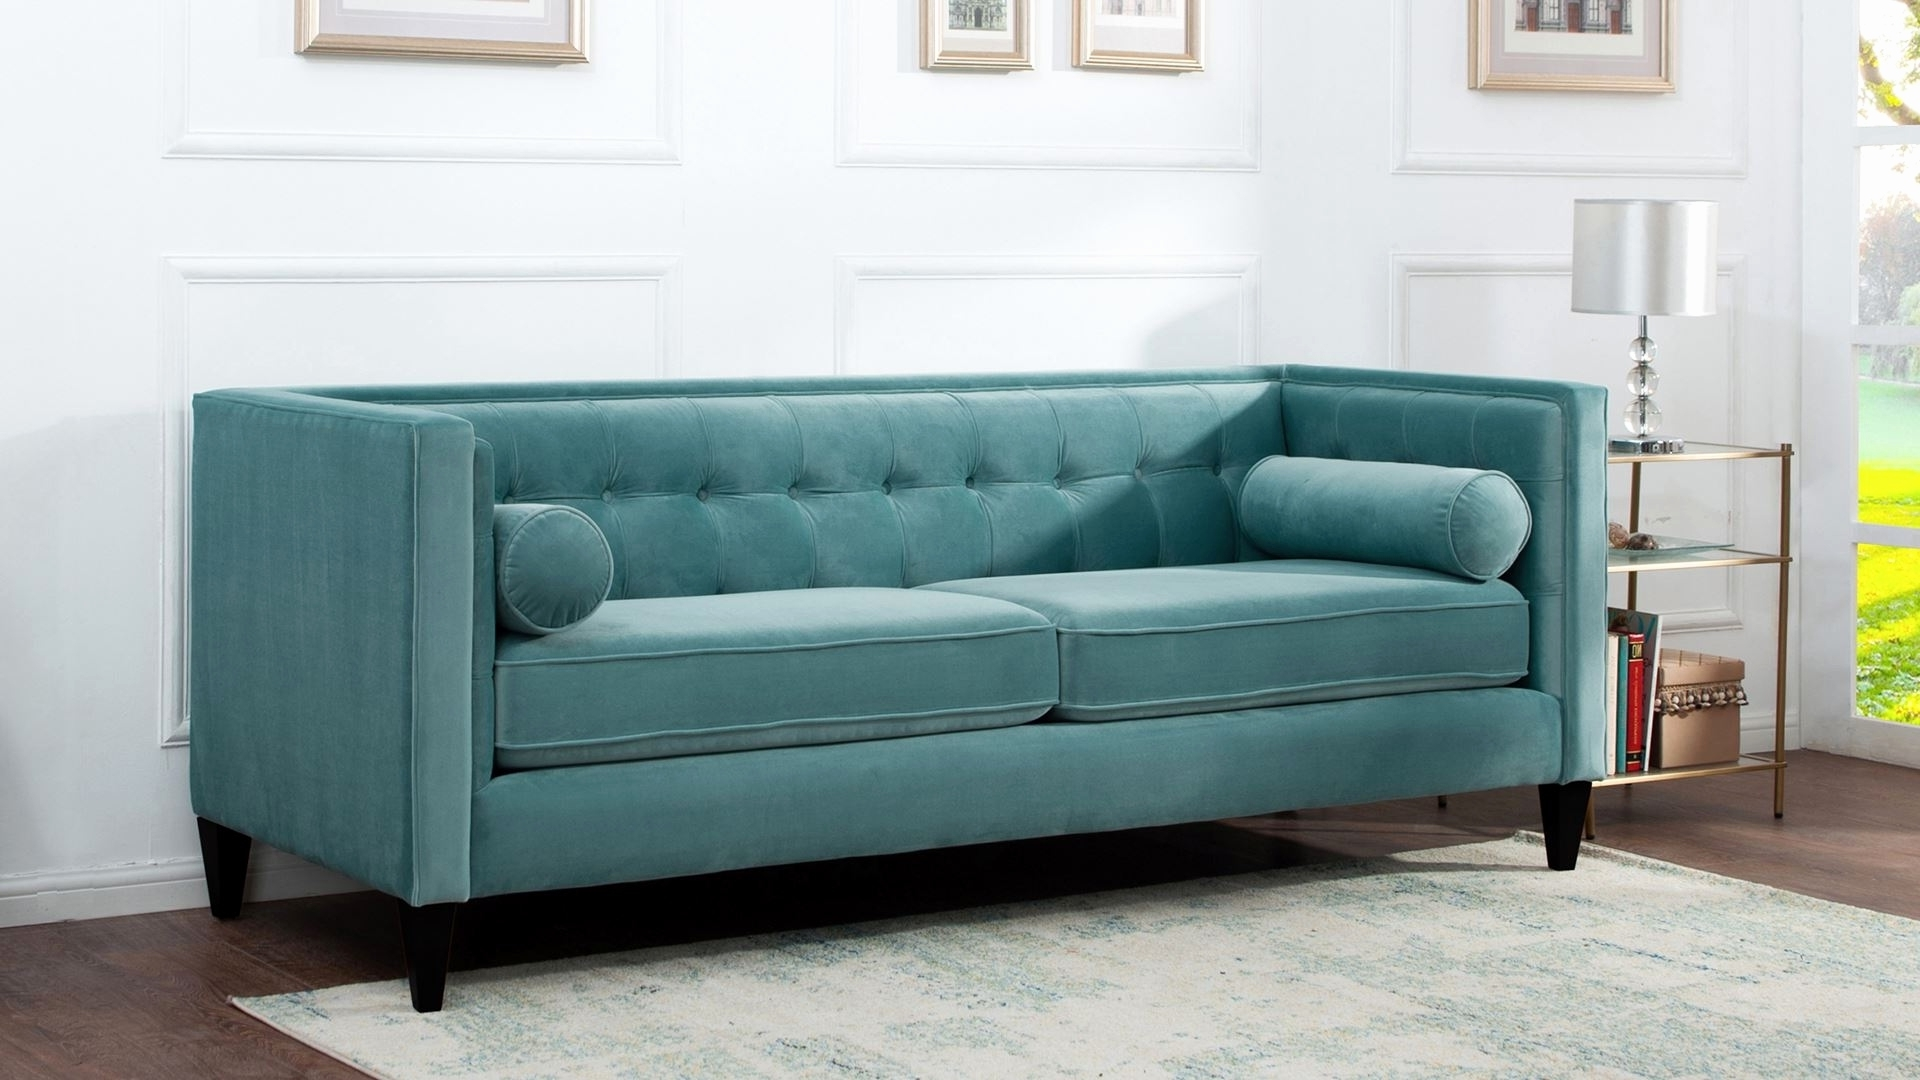 Well Known Lovely Affordable Tufted Sofa 2018 – Couches And Sofas Ideas Intended For Affordable Tufted Sofas (View 6 of 15)